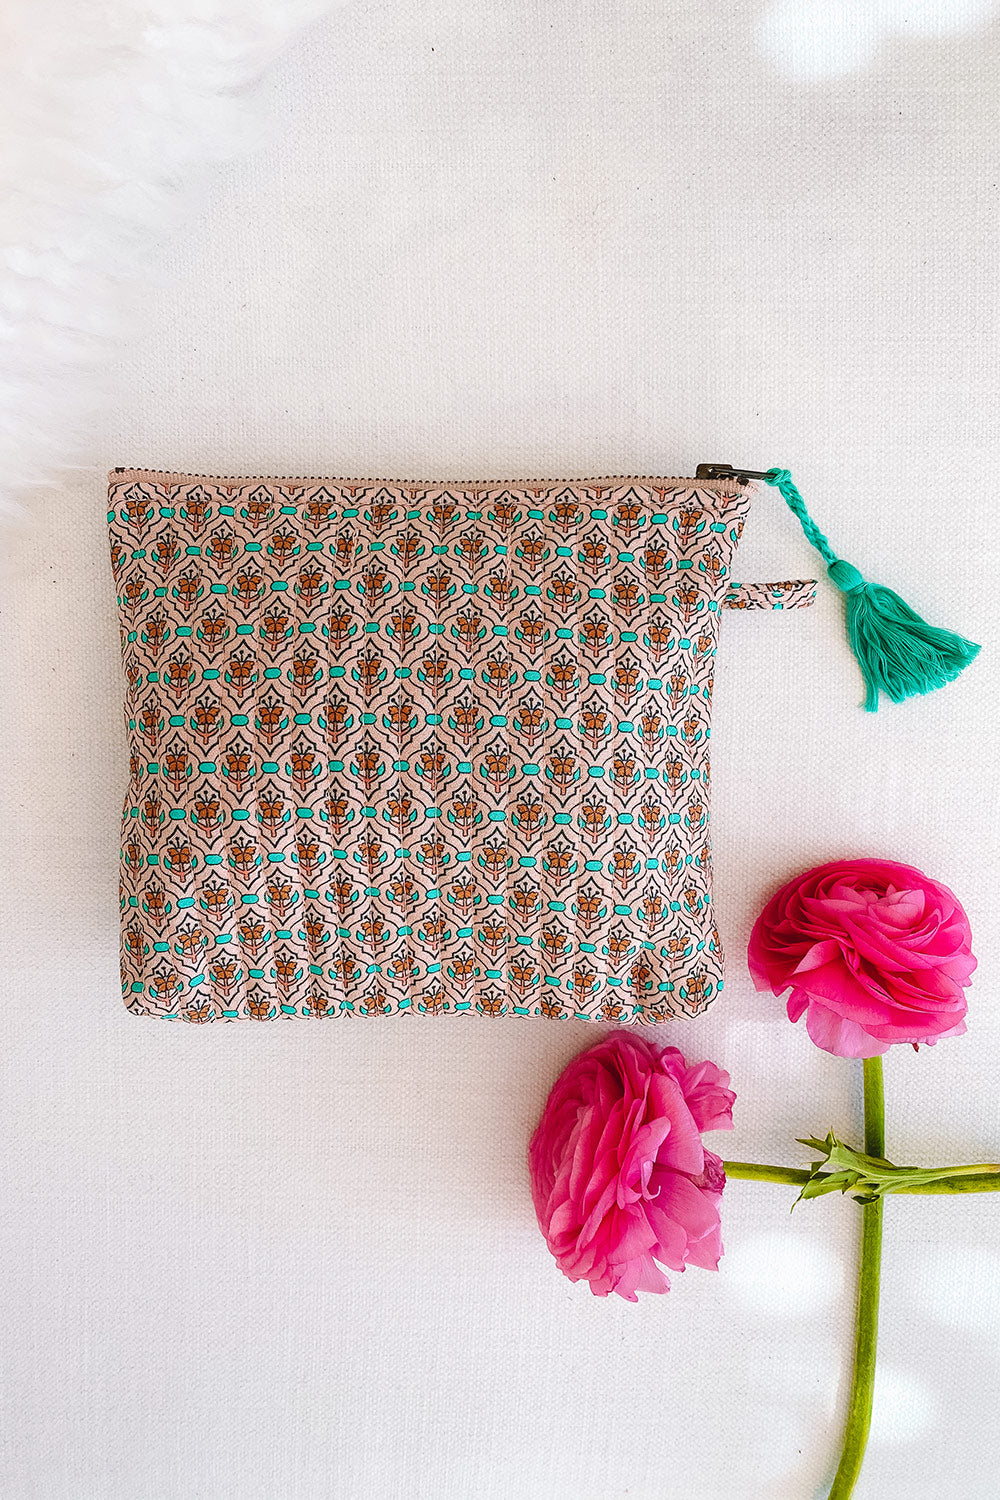 Fleetwood Revive Pouch in Tile Blush